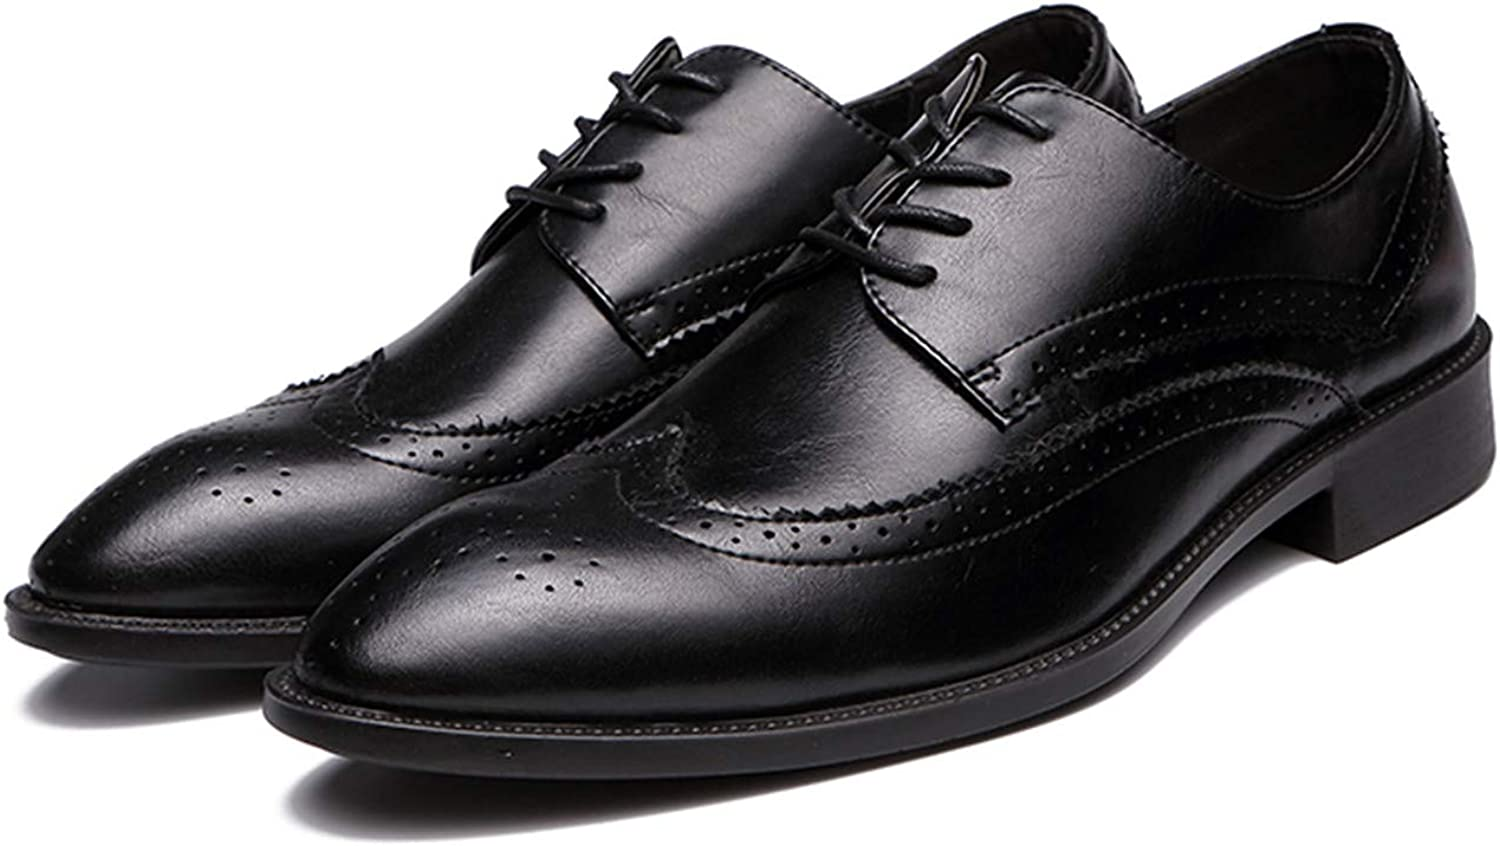 Man Pointed Toe Dress Shoes Mens Patent Leather Black Brogue Shoes Wedding Shoes Oxford Formal Shoes